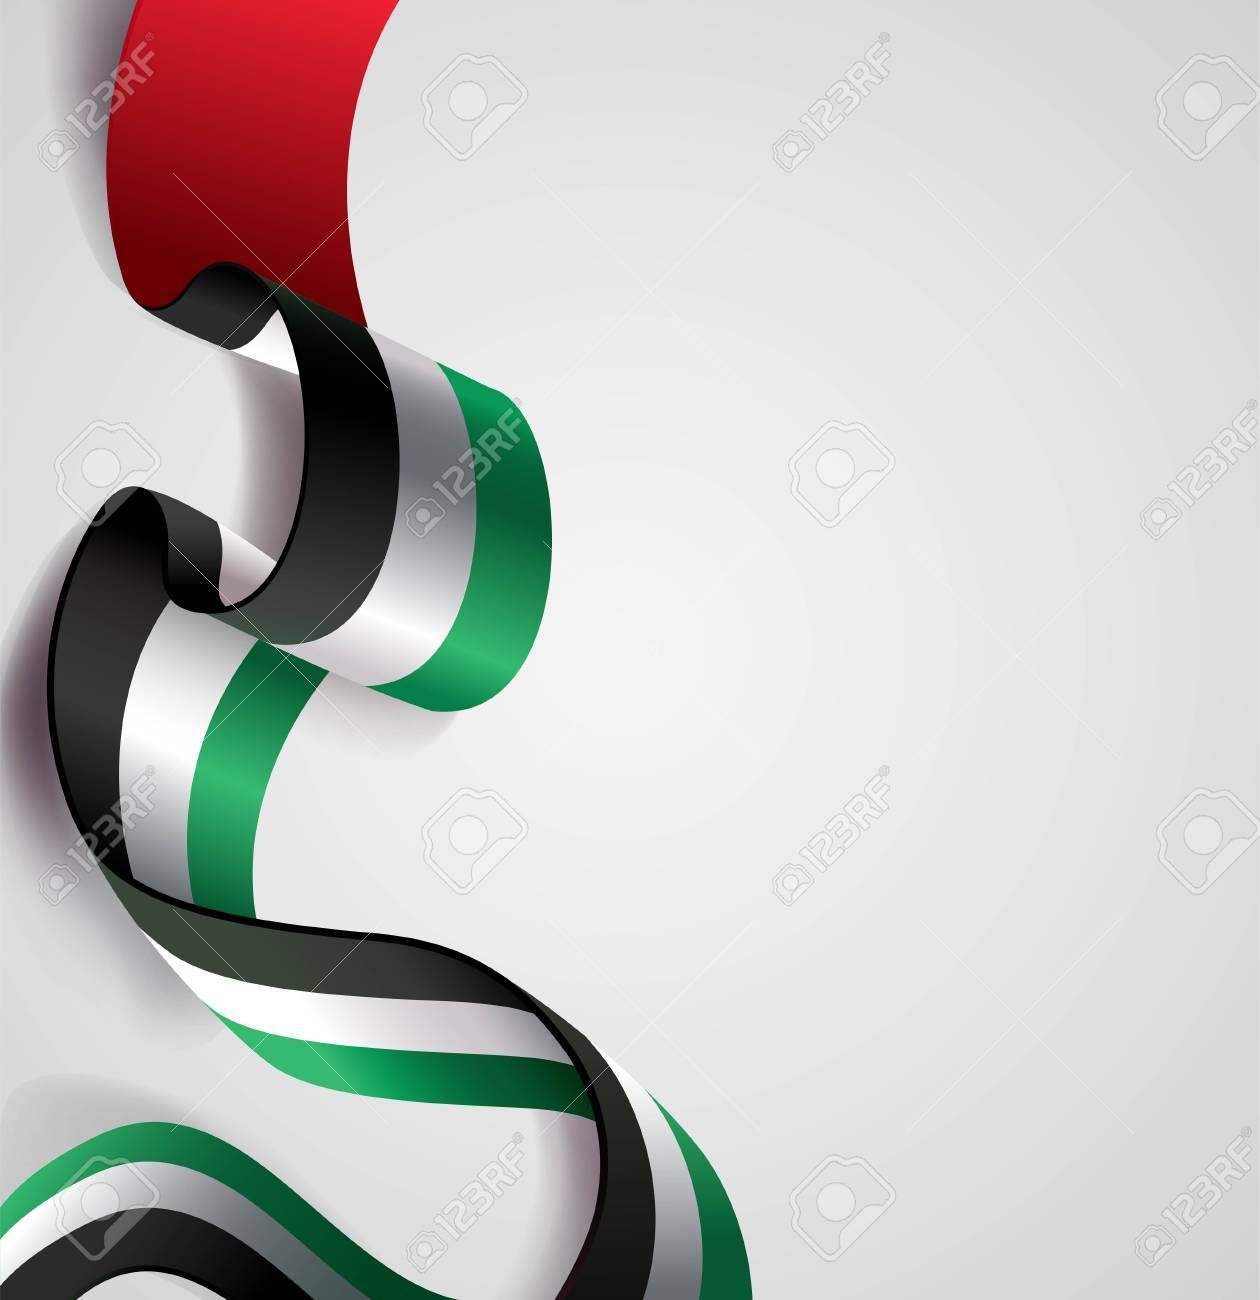 Uae Independence Day Greeting Card Concept Design Royalty Free